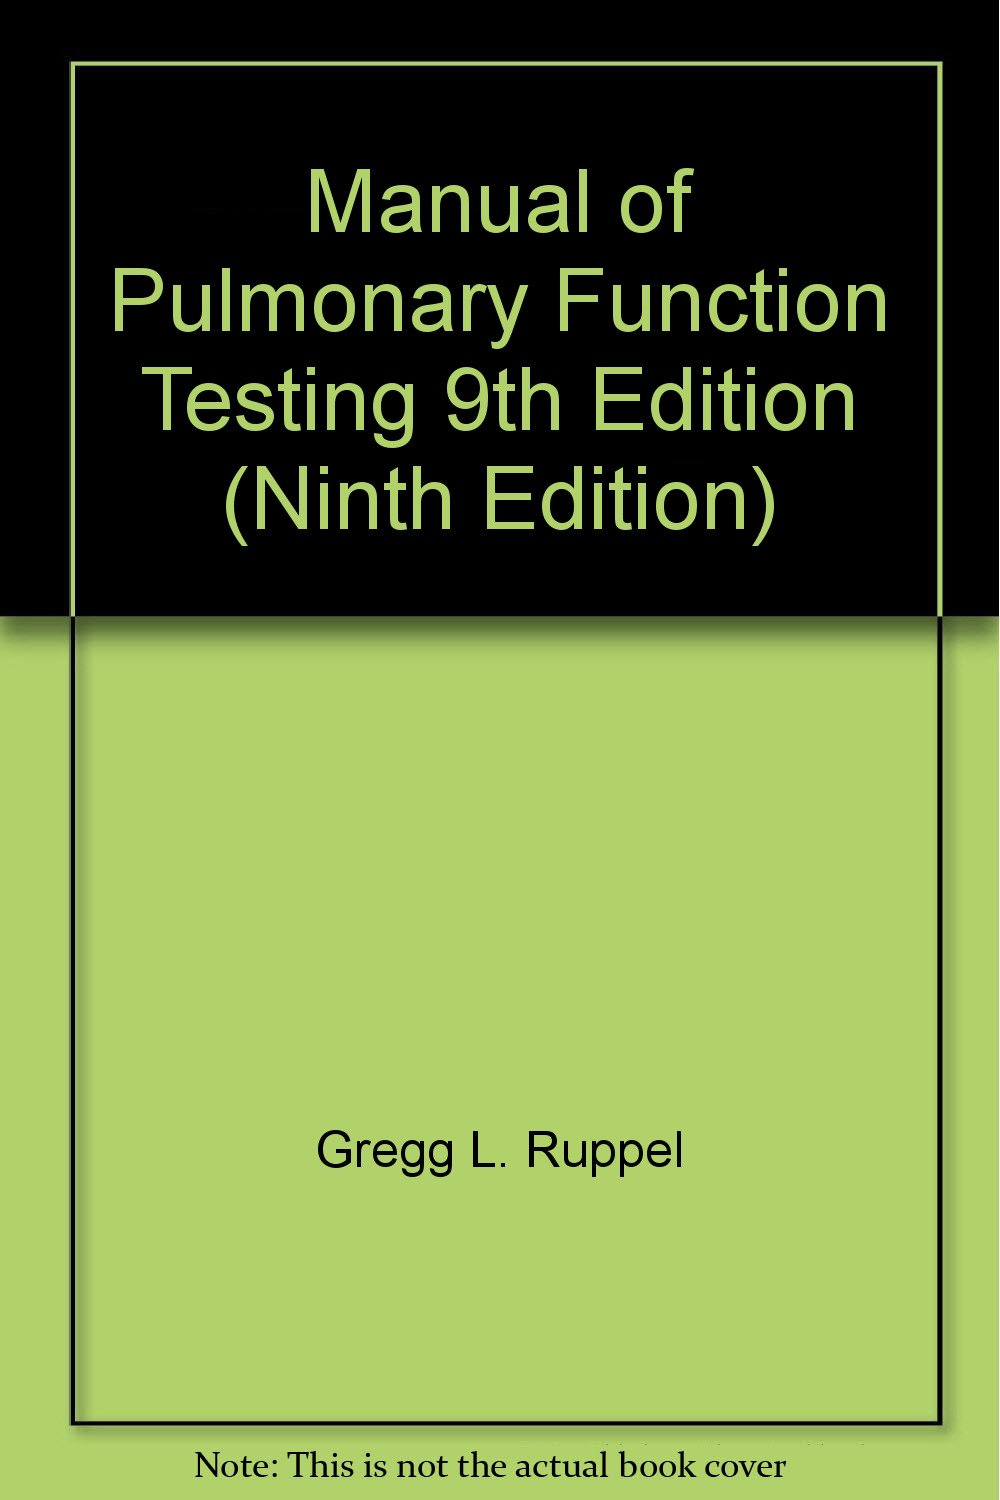 Manual of Pulmonary Function Testing 9th Edition (Ninth Edition): Gregg L.  Ruppel: Amazon.com: Books